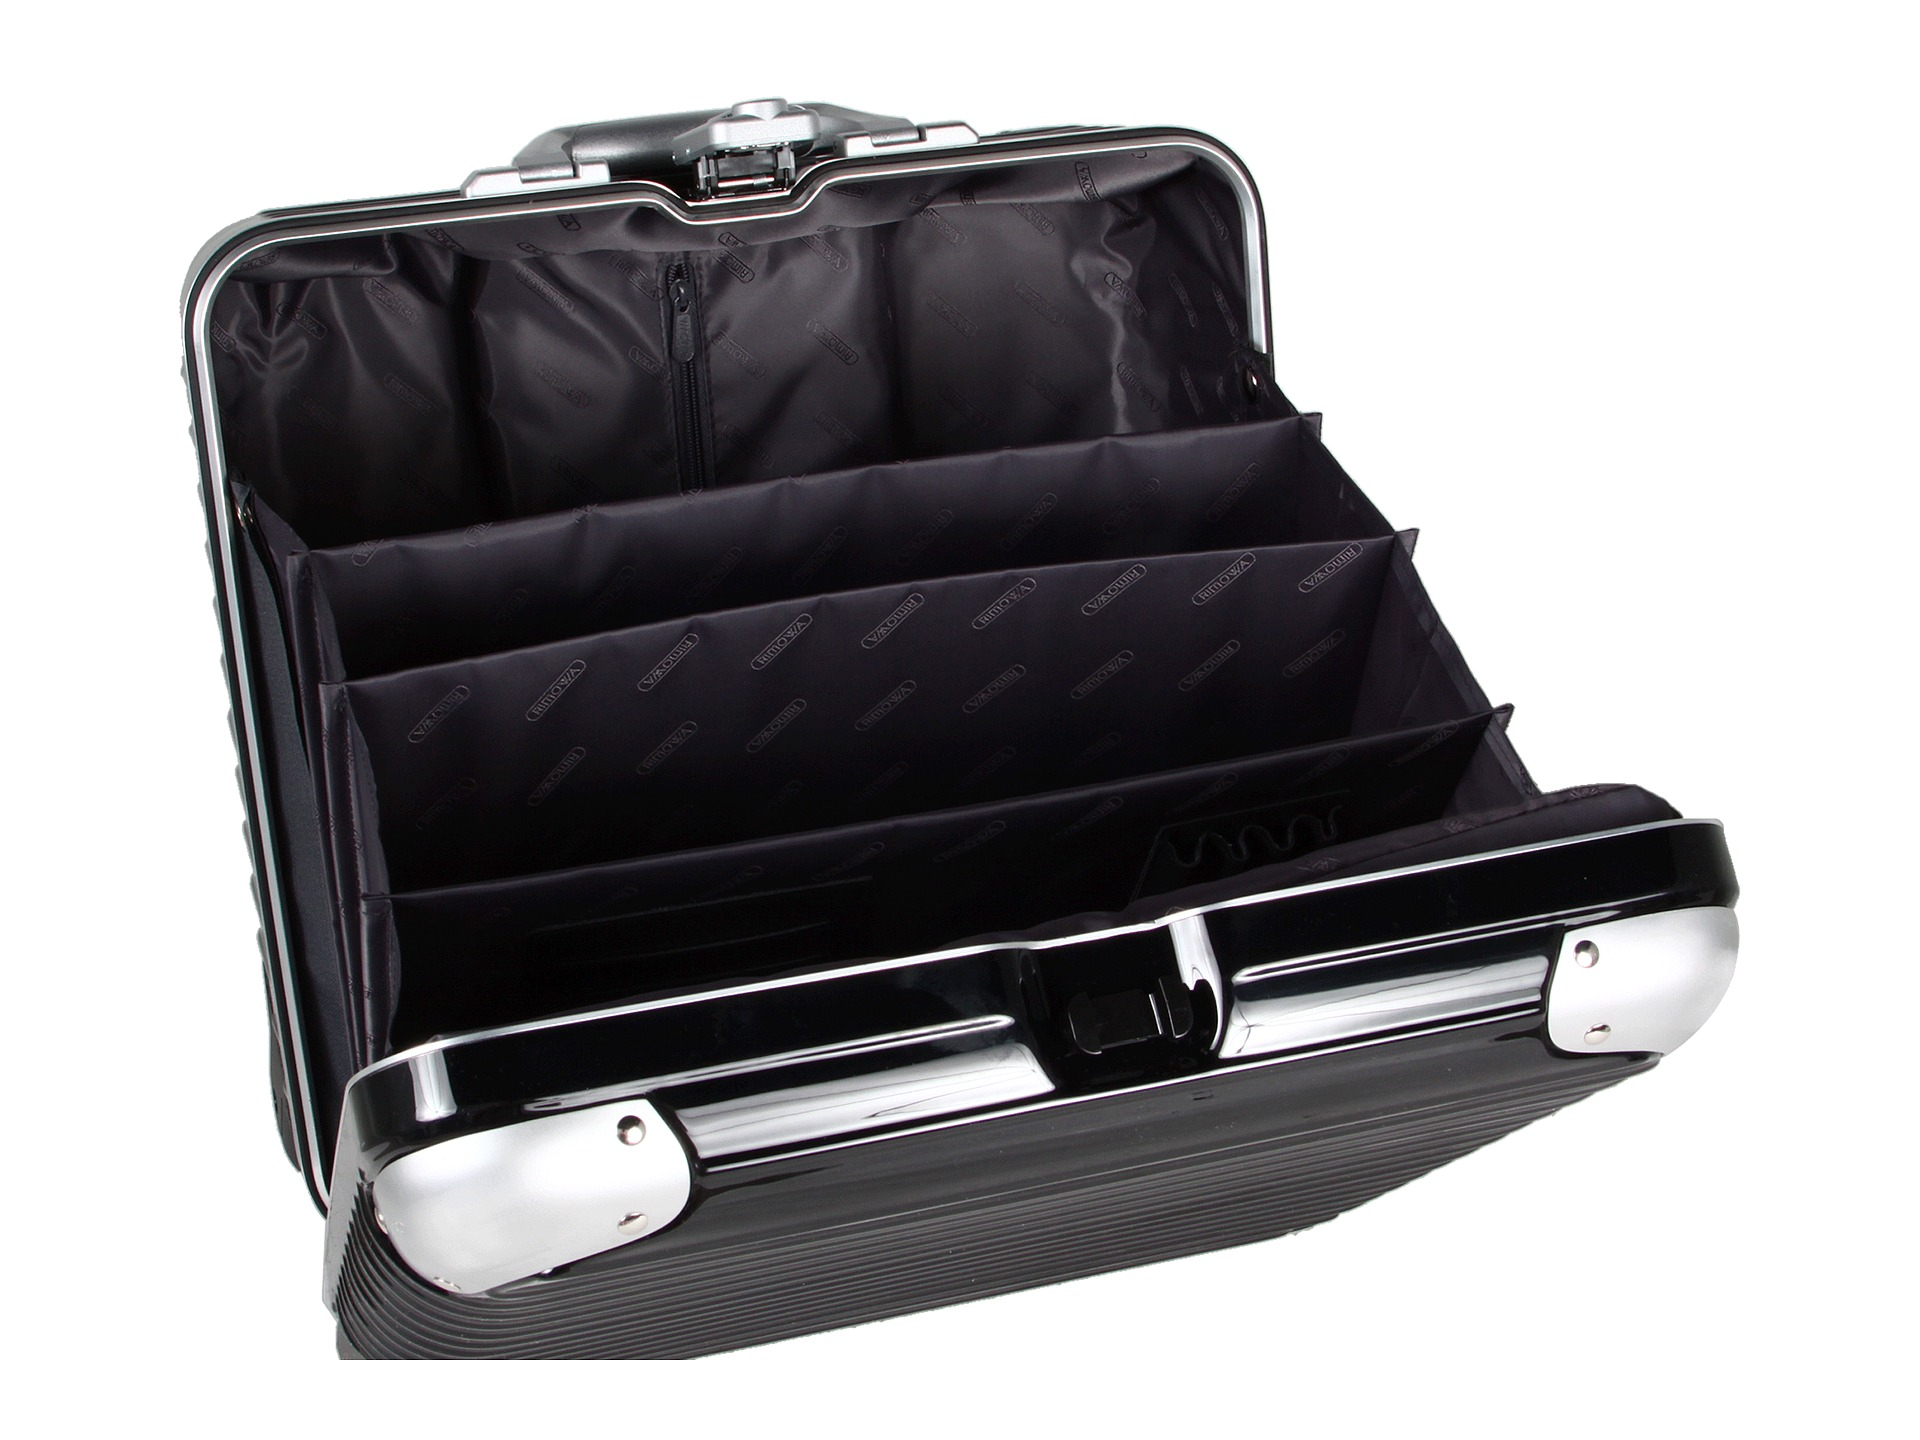 Rimowa Limbo - Business Trolley - Zappos.com Free Shipping BOTH Ways